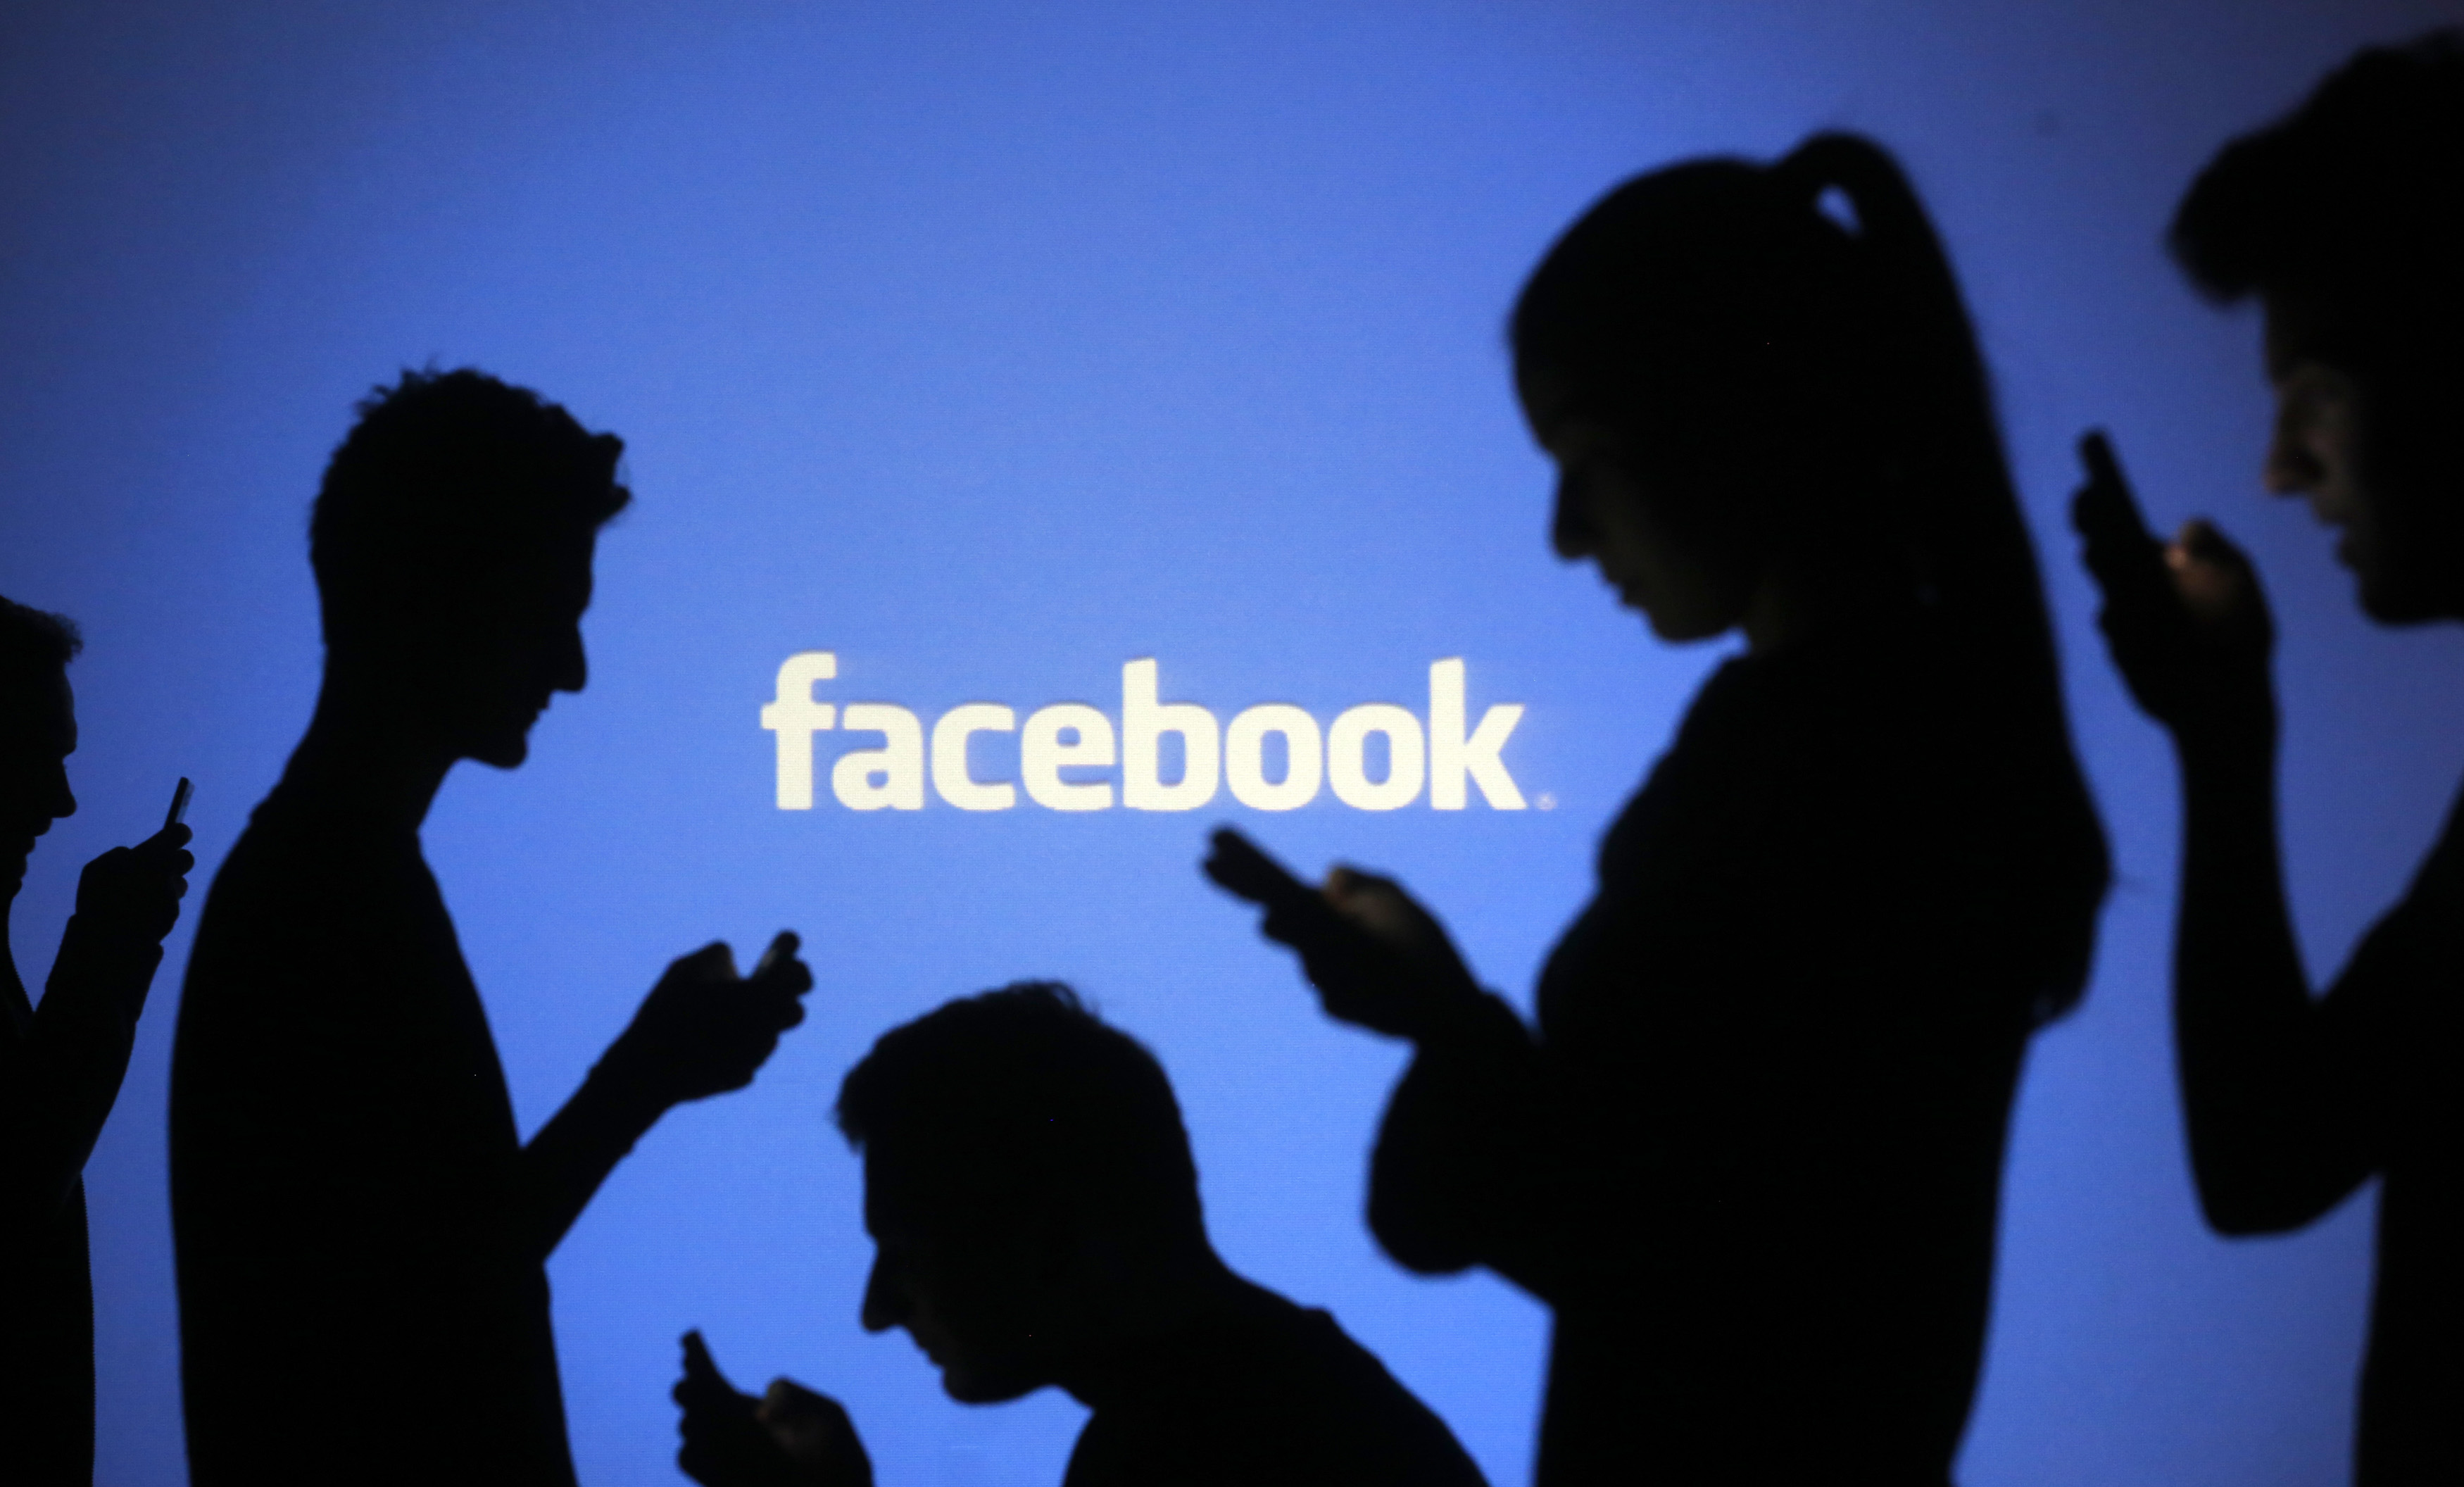 Facebook reportedly investigated over 'systemic' racism in hiring